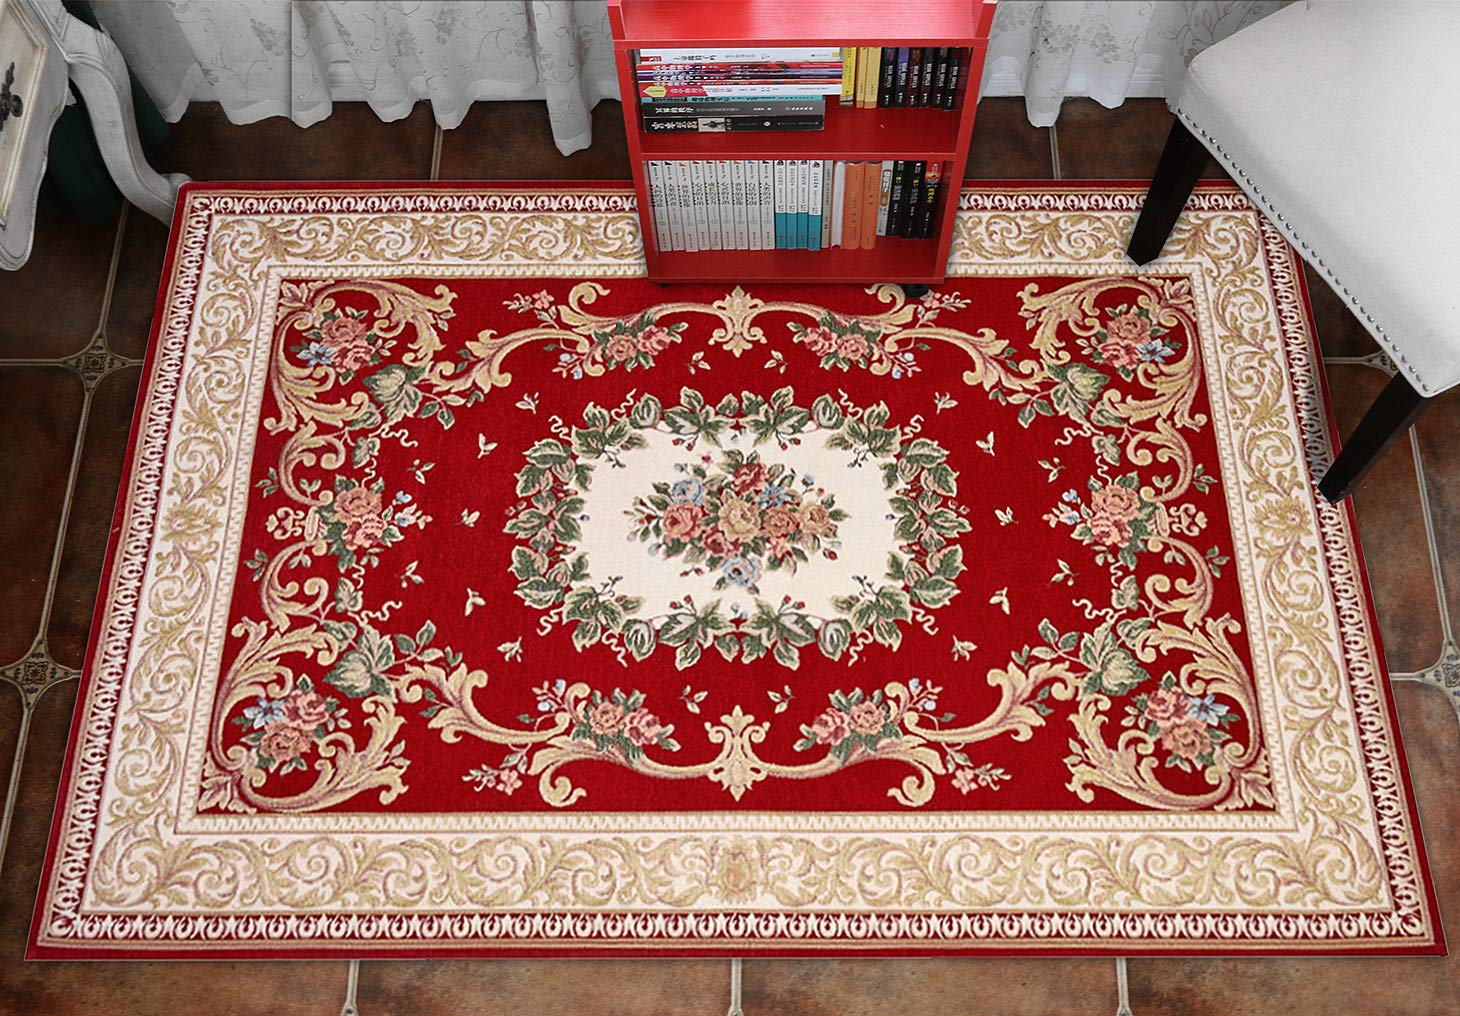 Vintage Floral Area Rugs 3x48,Hihome Non Slip Large Entryway Rug Washable Rug for Door Entrance Indoor Small Rug for Bedroom Office Chair Meeting Room 90x140cm